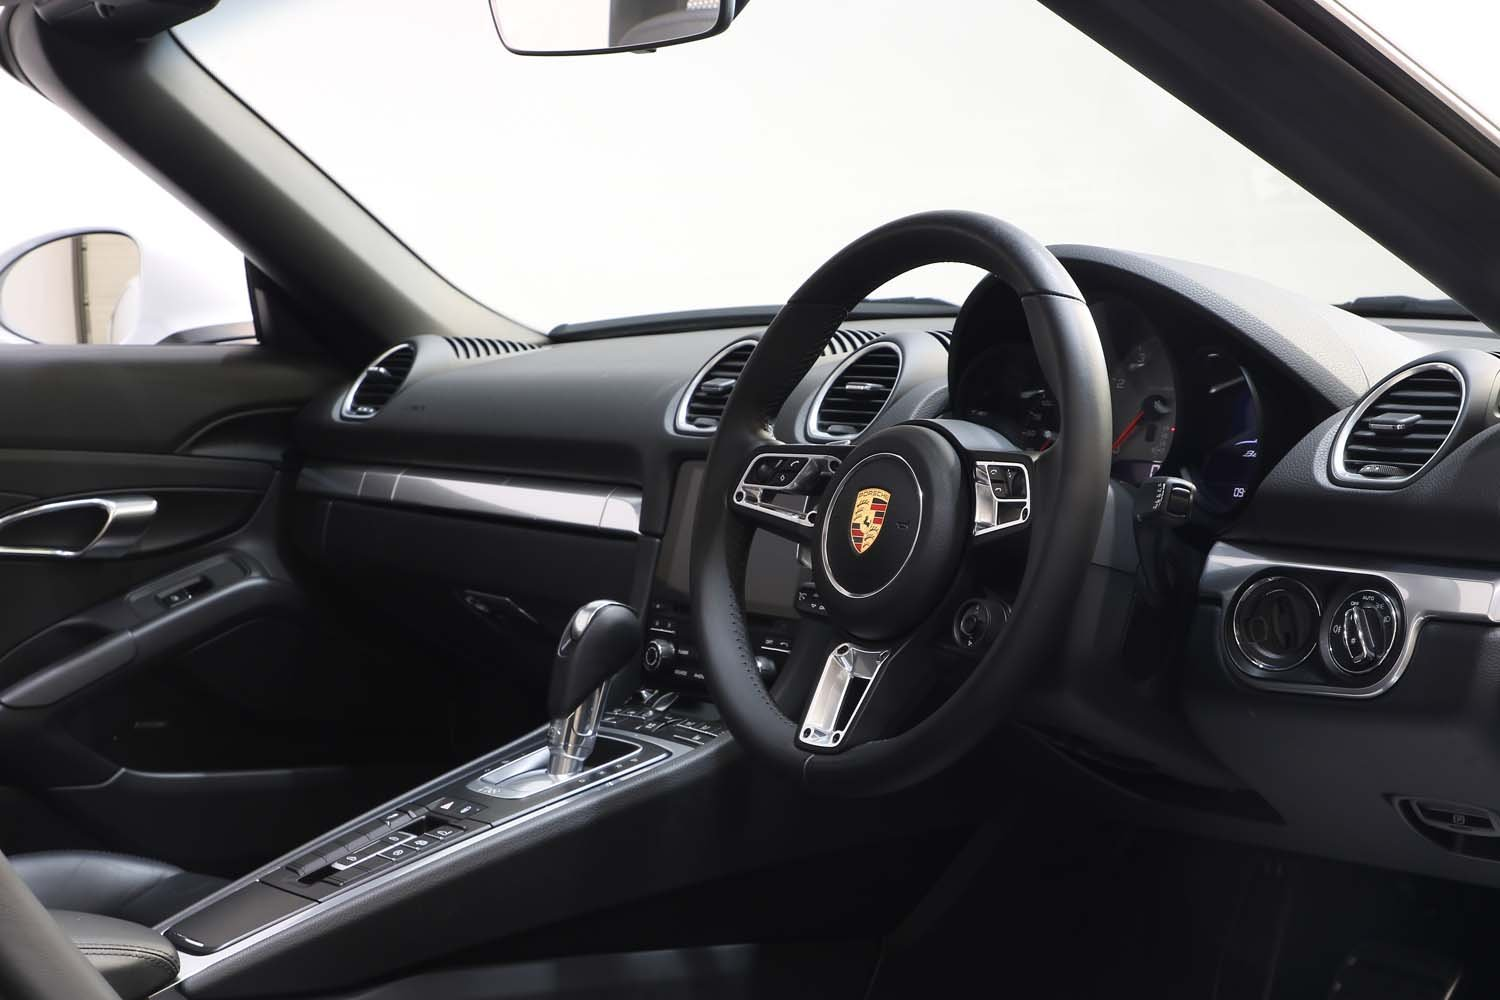 2018 PORSCHE 718 BOXSTER S 2.5 PDK  For Sale (picture 4 of 6)